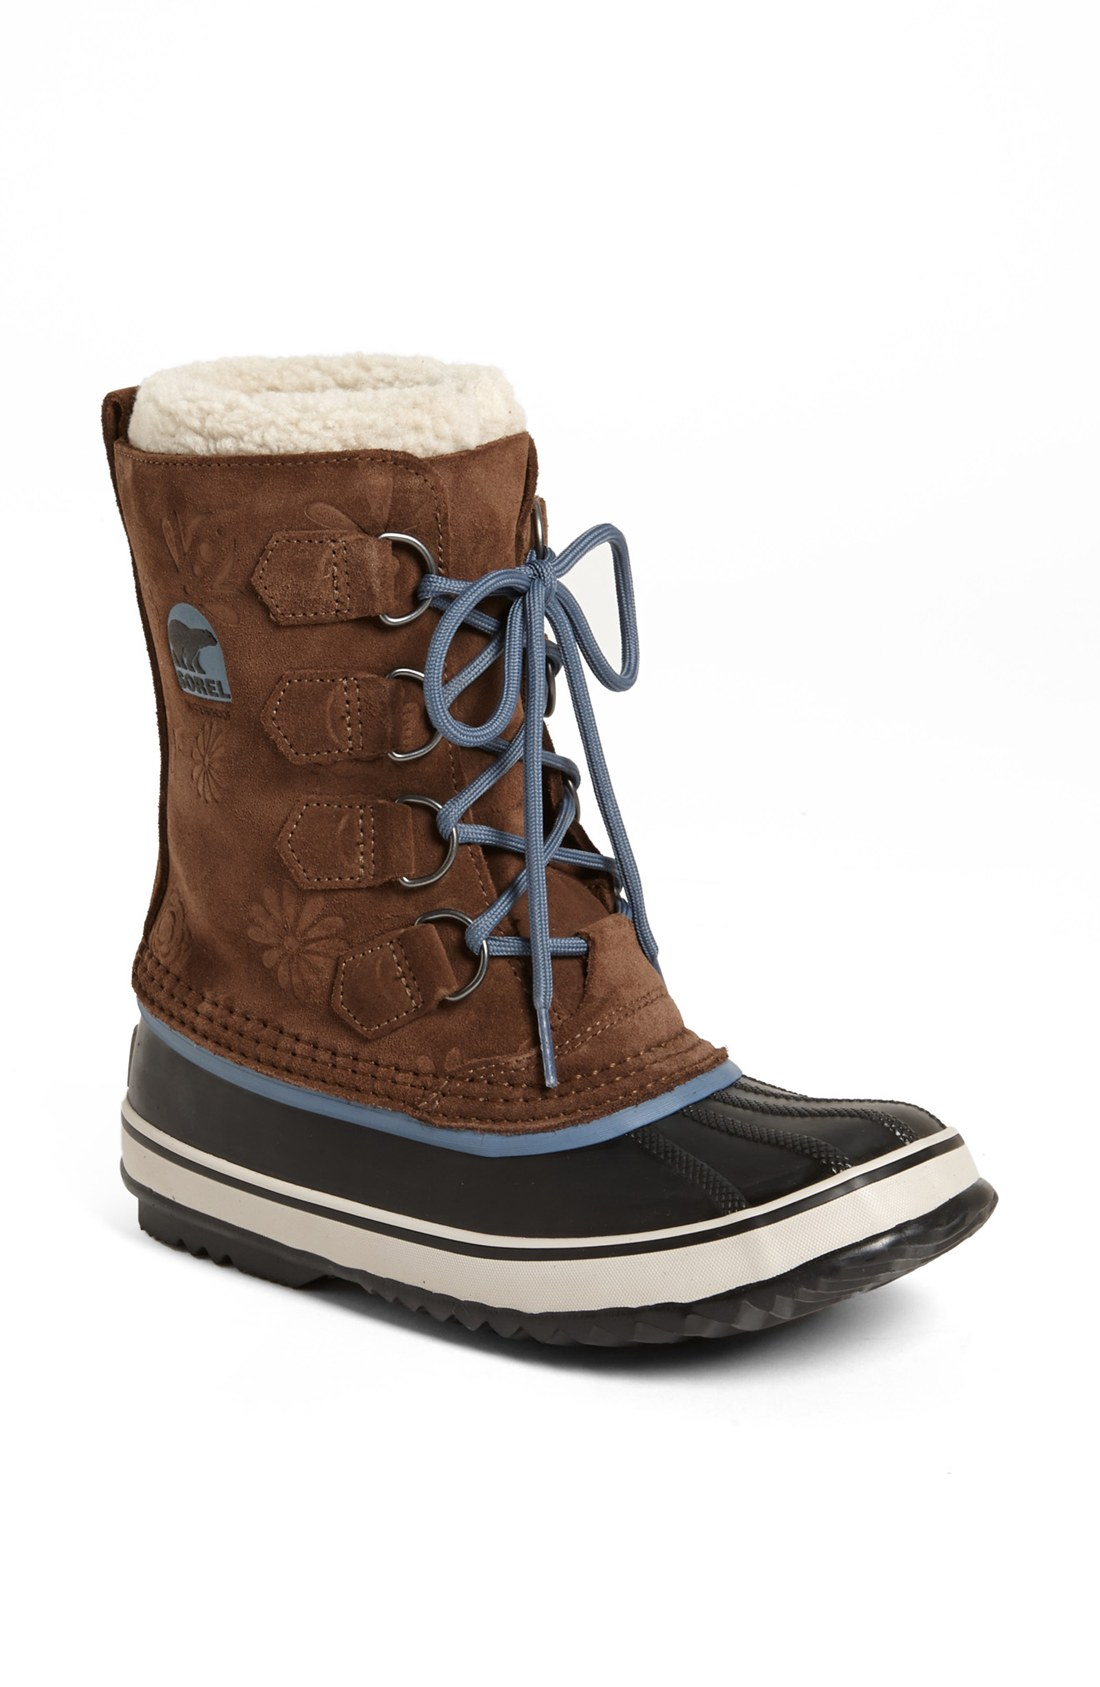 sorel pac graphic 13 waterproof snow boot in brown